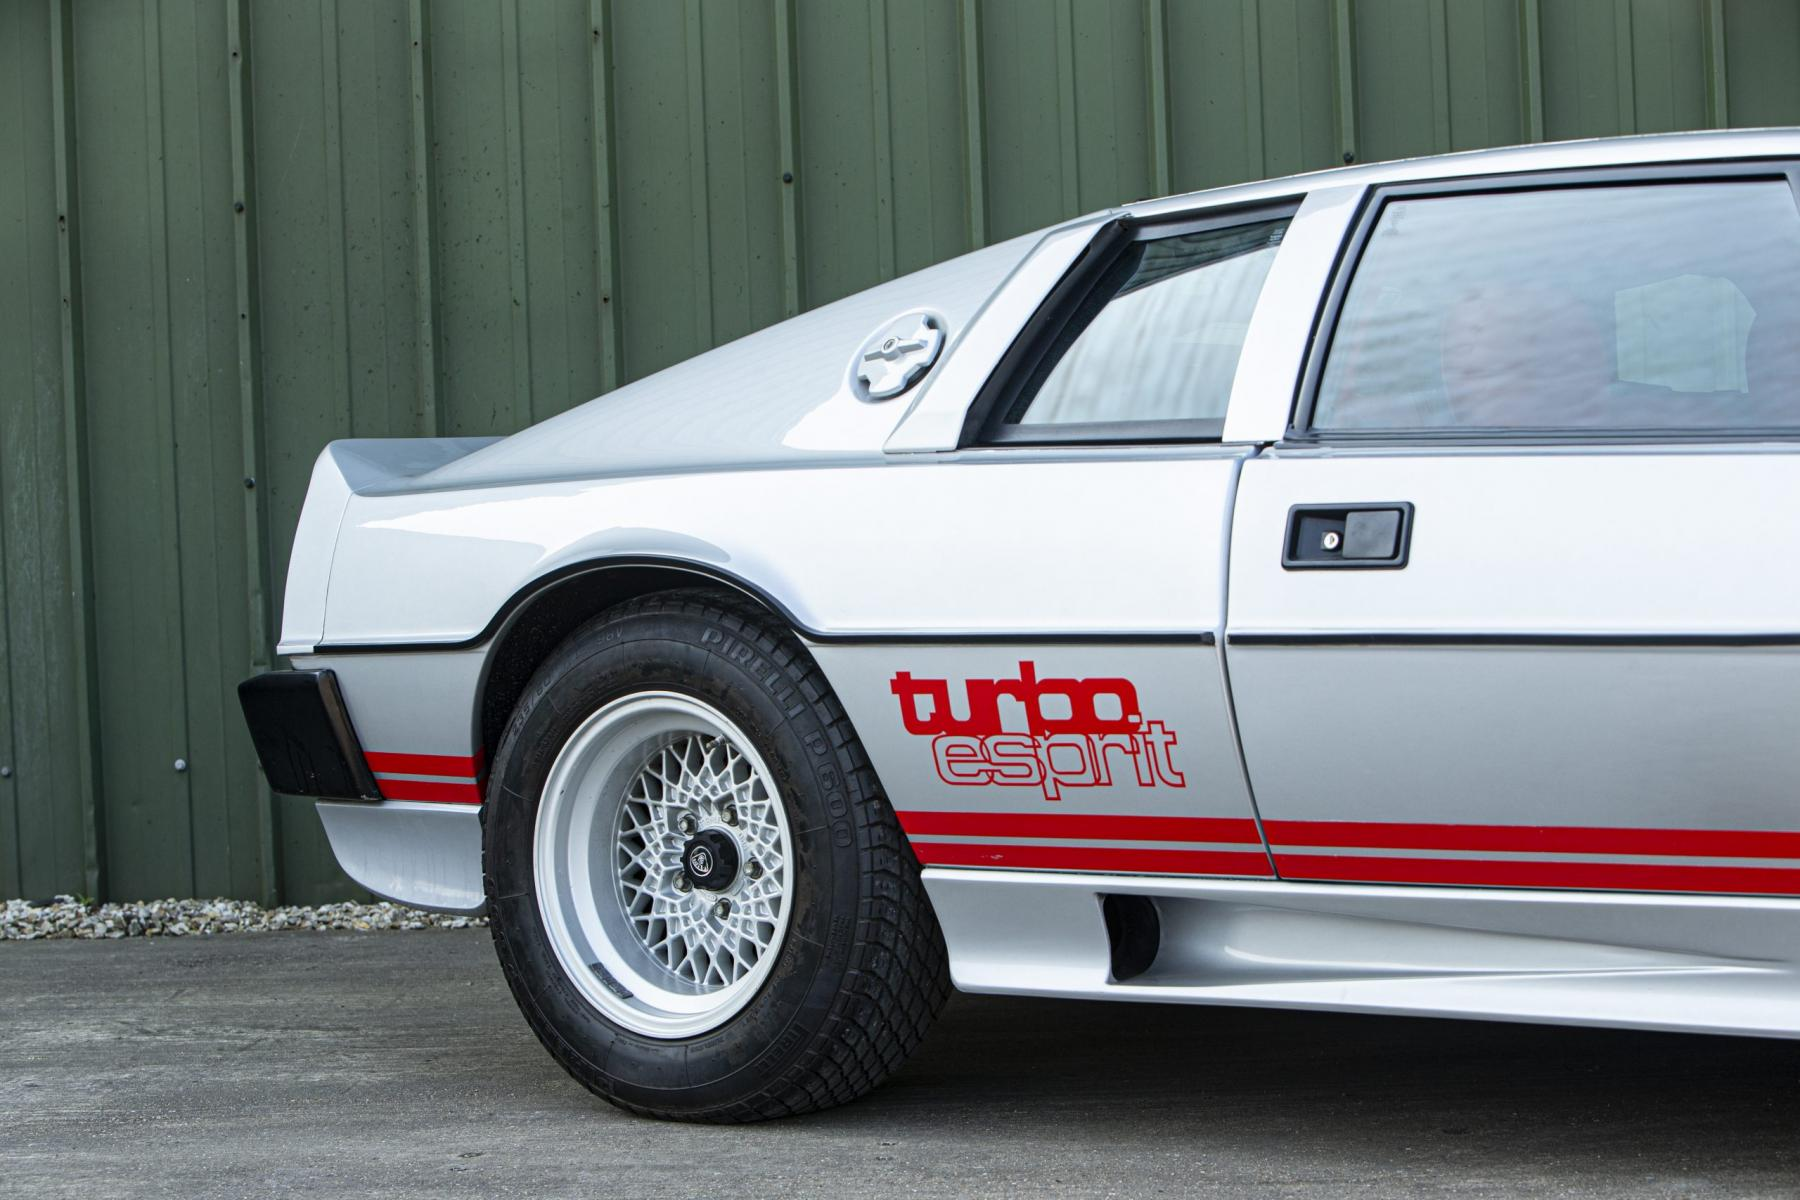 Colin Chapman's Lotus Esprit Turbo